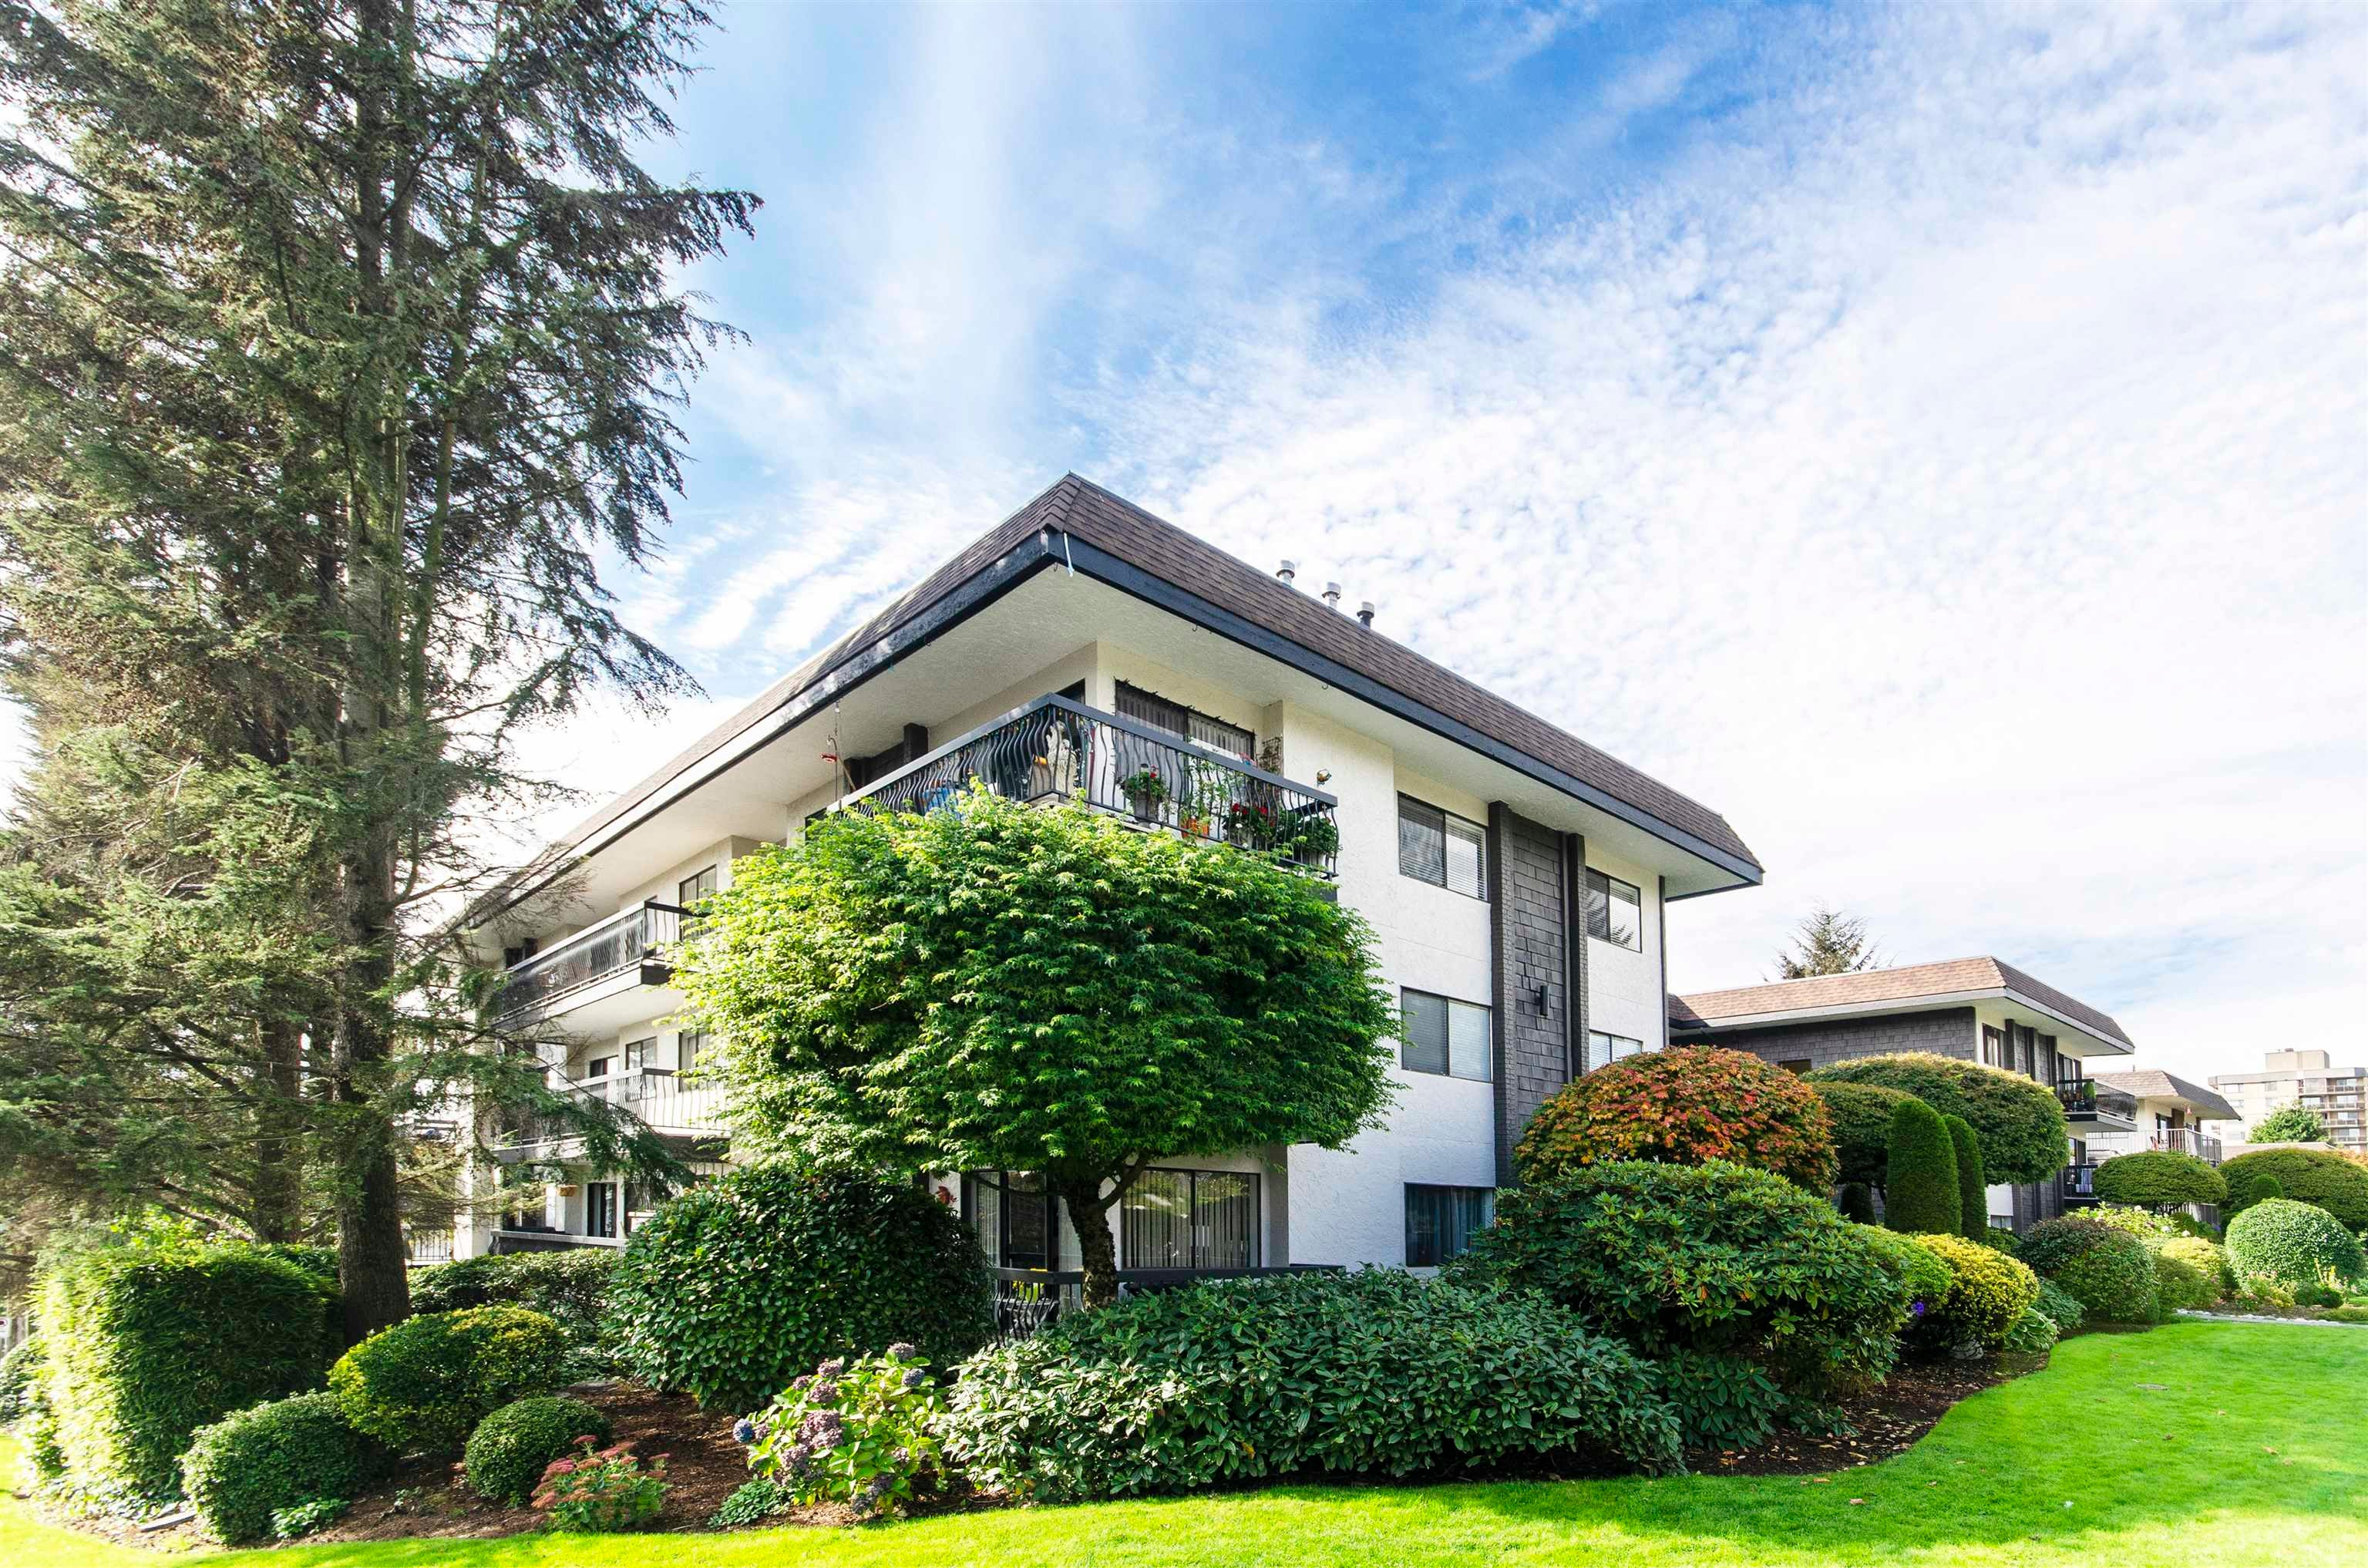 206 175 E 5TH STREET - Lower Lonsdale Apartment/Condo for sale, 2 Bedrooms (R2624759) - #23